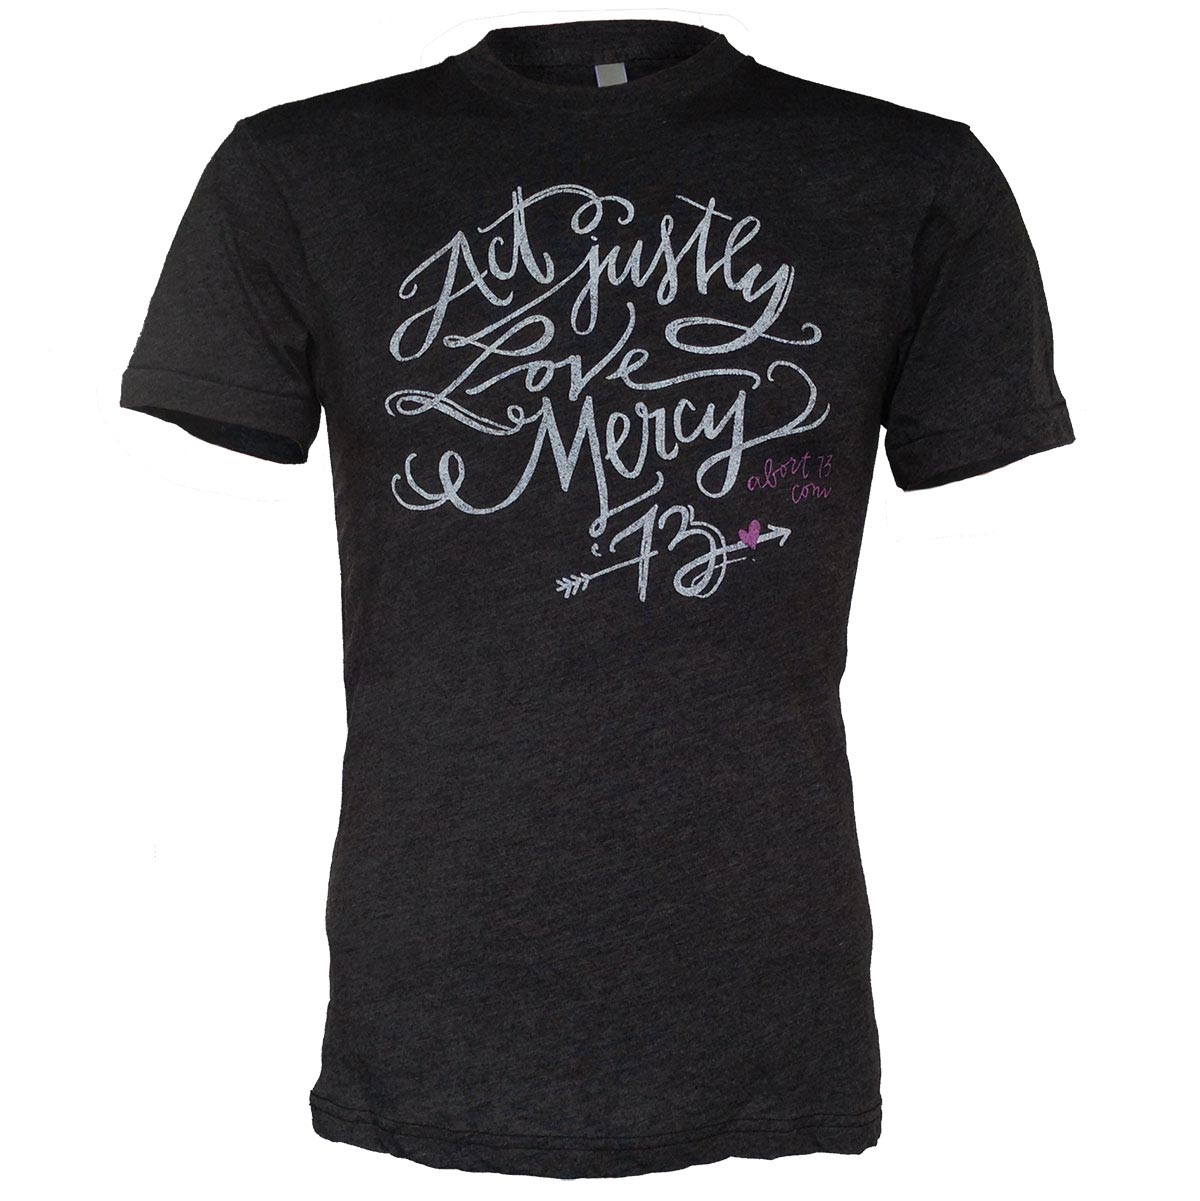 Act Justly. Love Mercy. (Abort73 Unisex Tri-Blend T-shirt 6010)